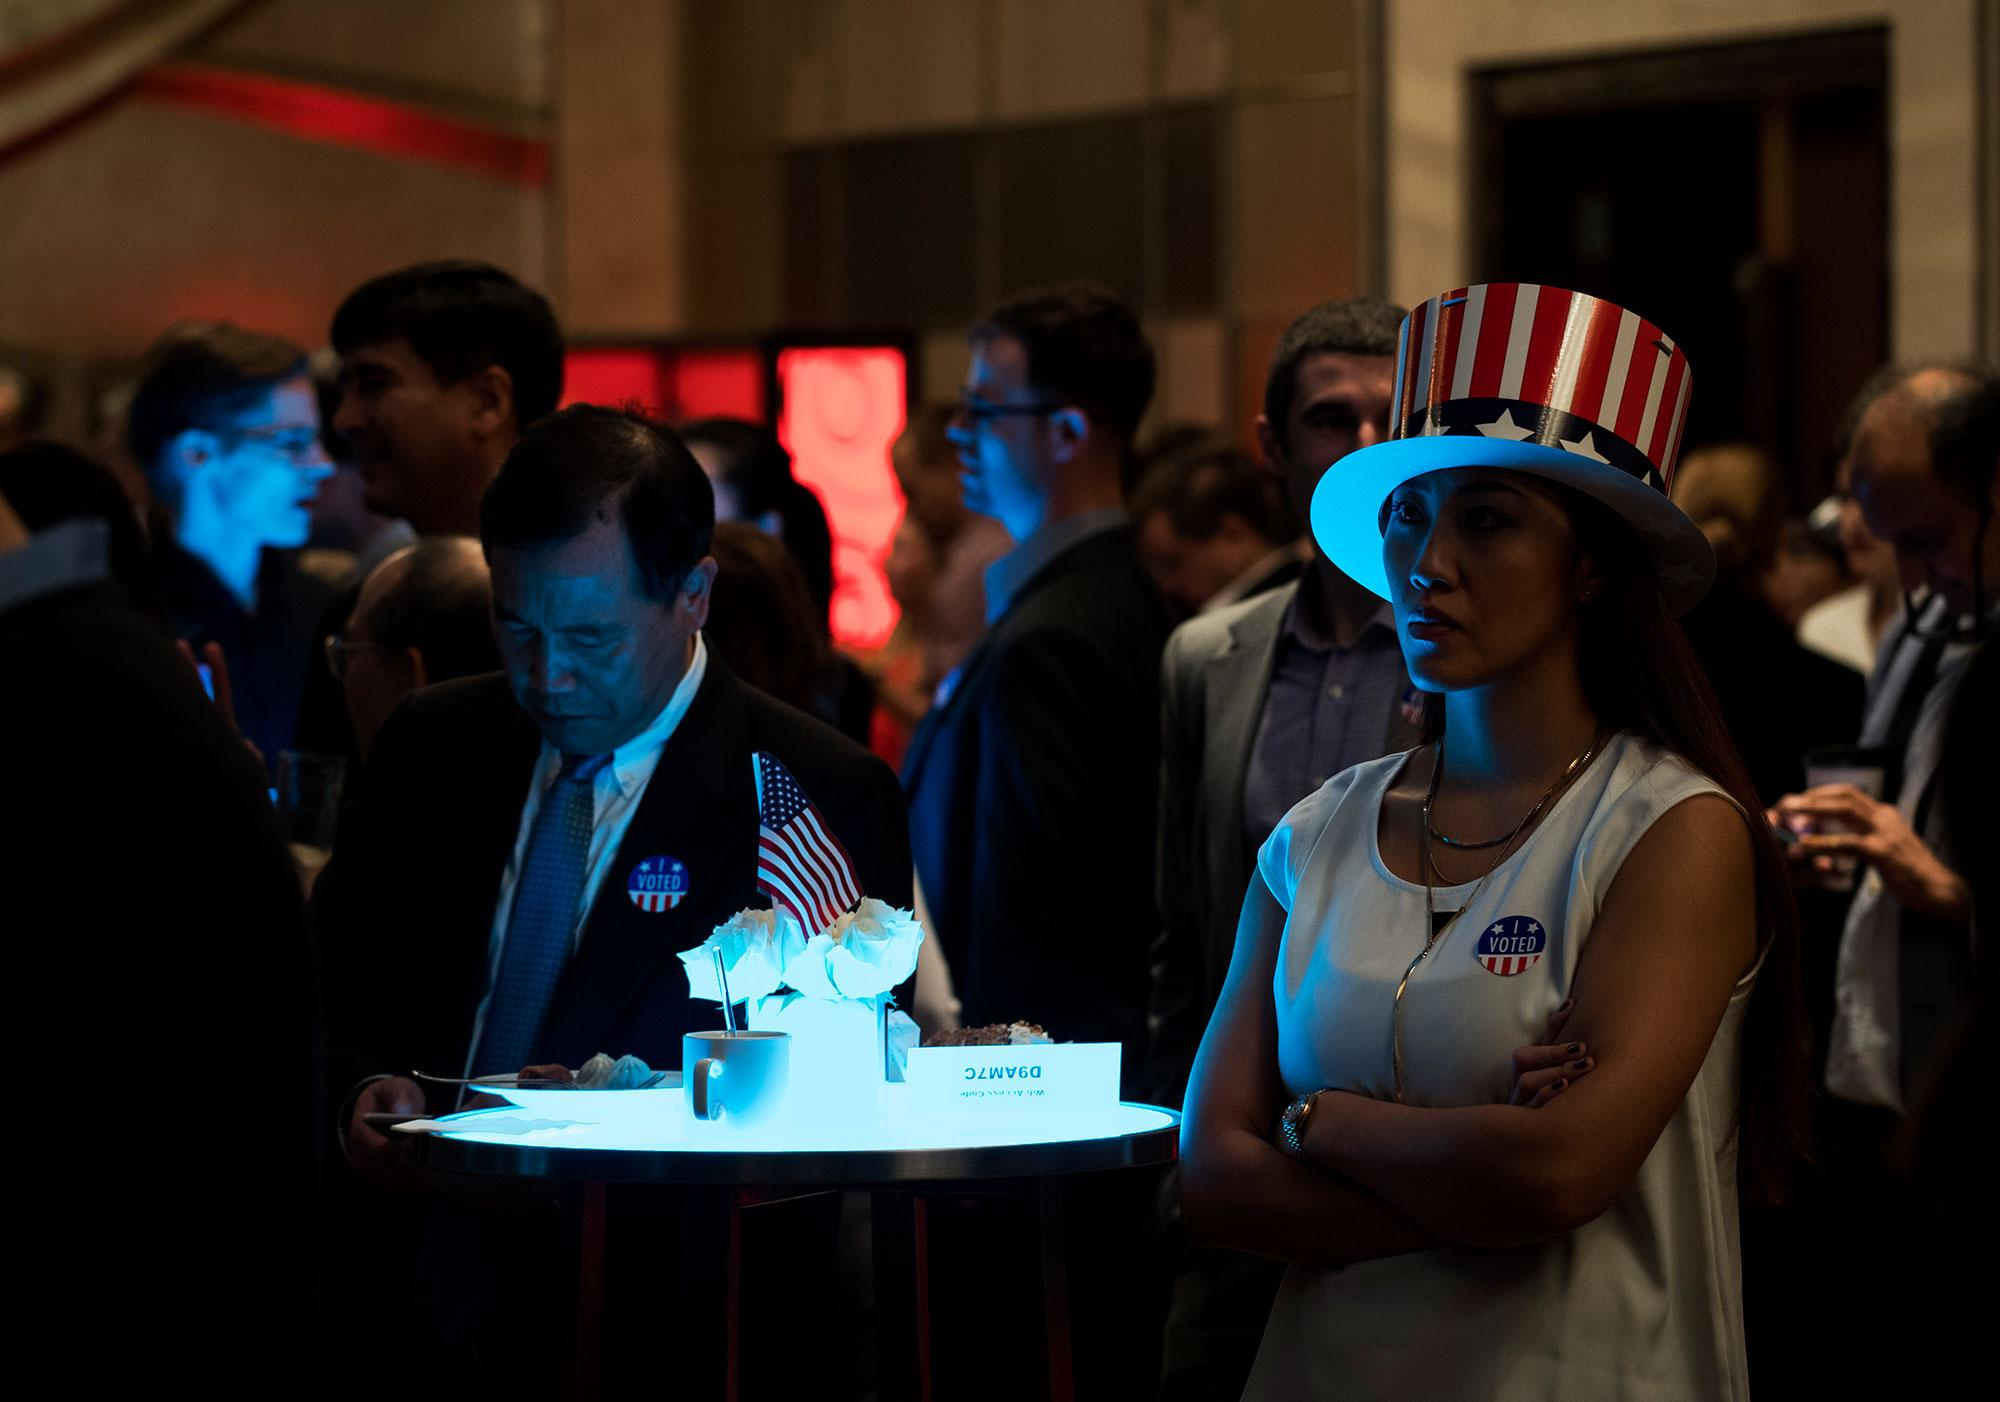 <p>People watch news on a screen to follow the results of the final day of the US presidential election at an event organised by the American consulate in Shanghai on November 9, 2016. (Photo: Johannes Eisele/AFP/Getty Images) </p>